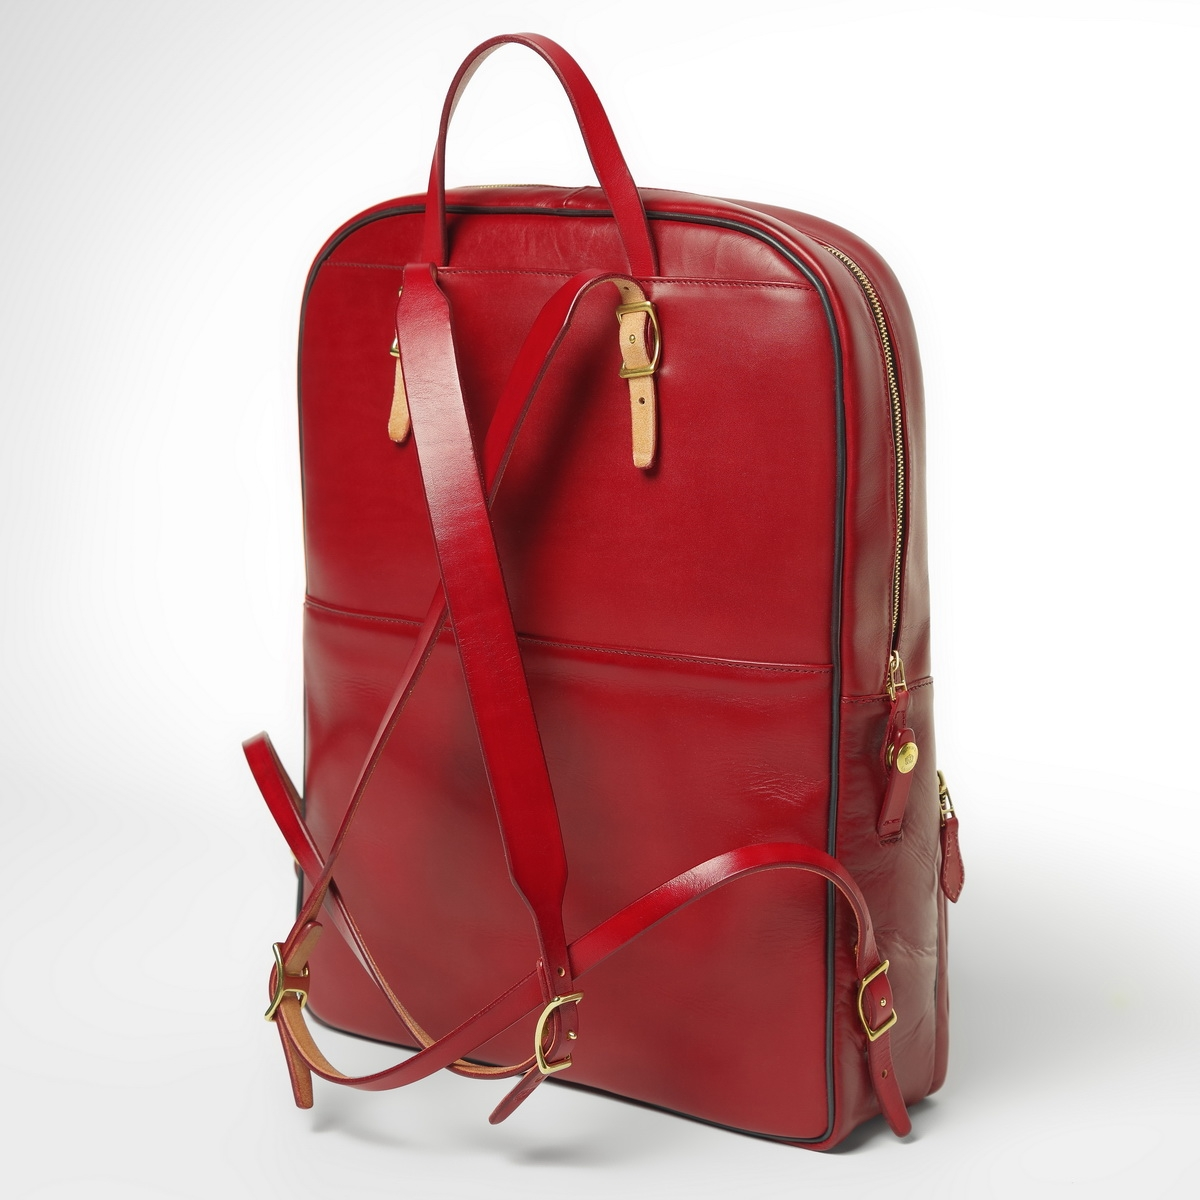 Backpack GRAN TURISMO 17'' red currant